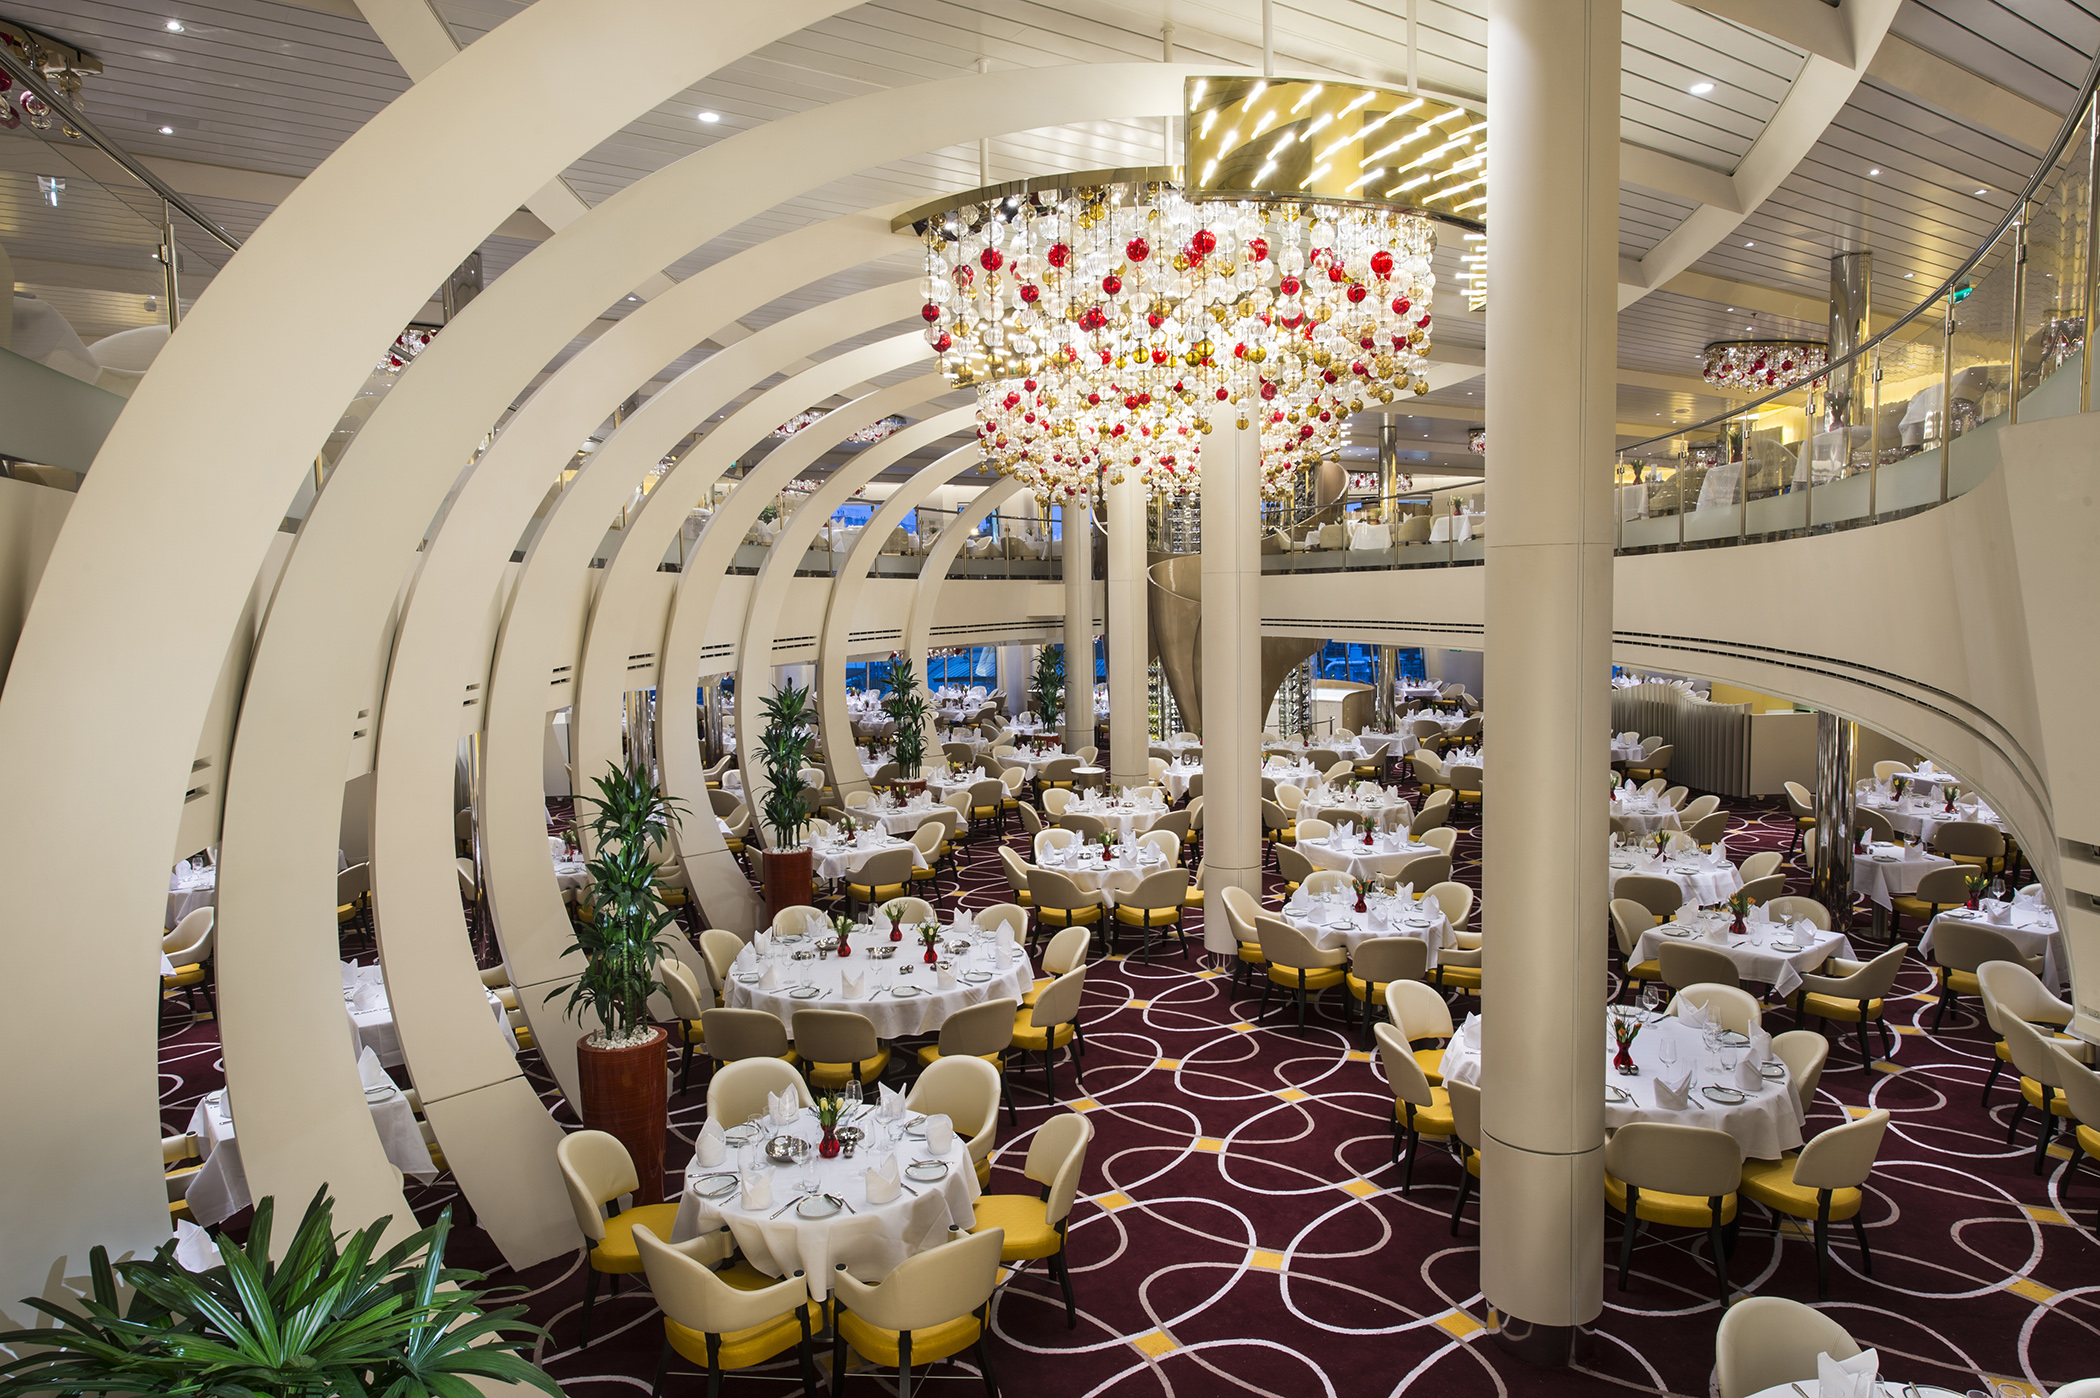 The Dining Room aboard Nieuw Statendam